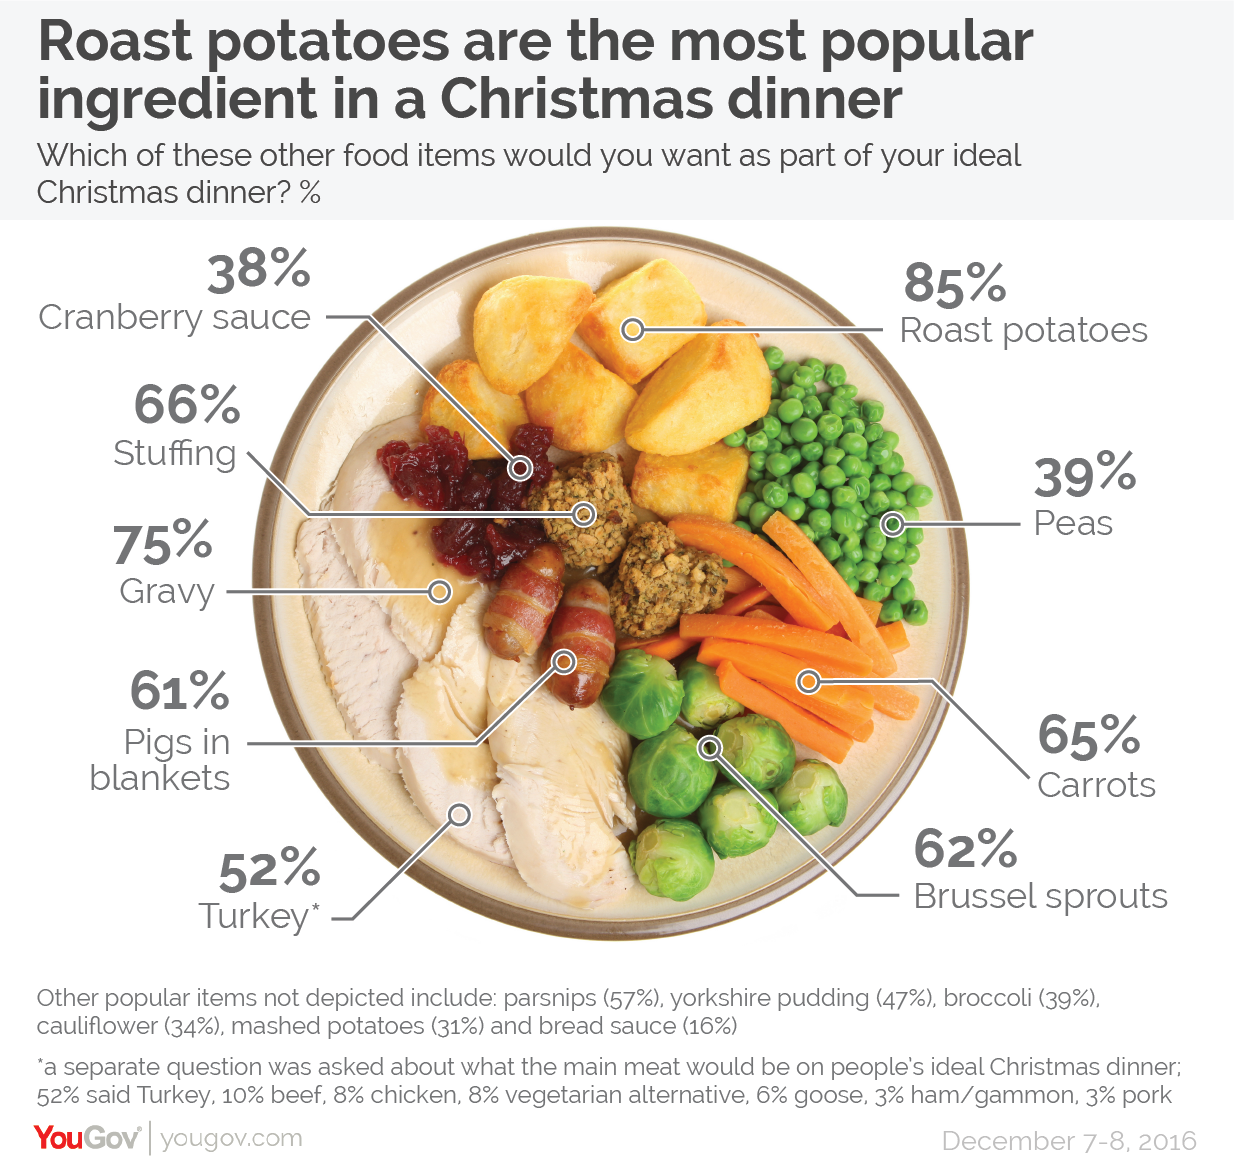 Only half want turkey in their ideal Christmas dinner | YouGov